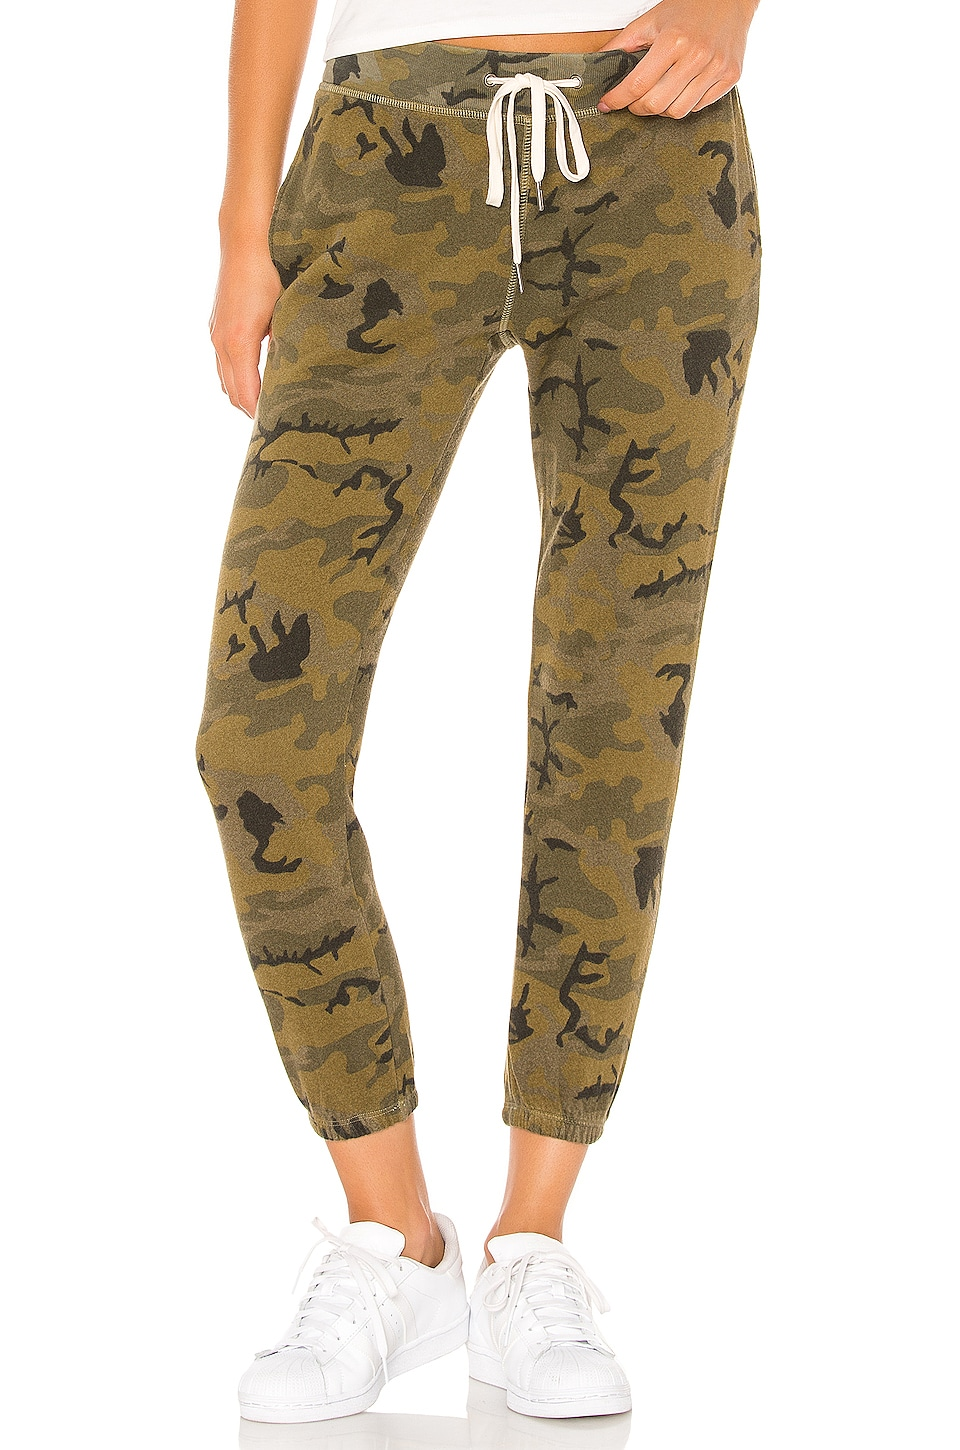 n:philanthropy Night Jogger in Olive Camo